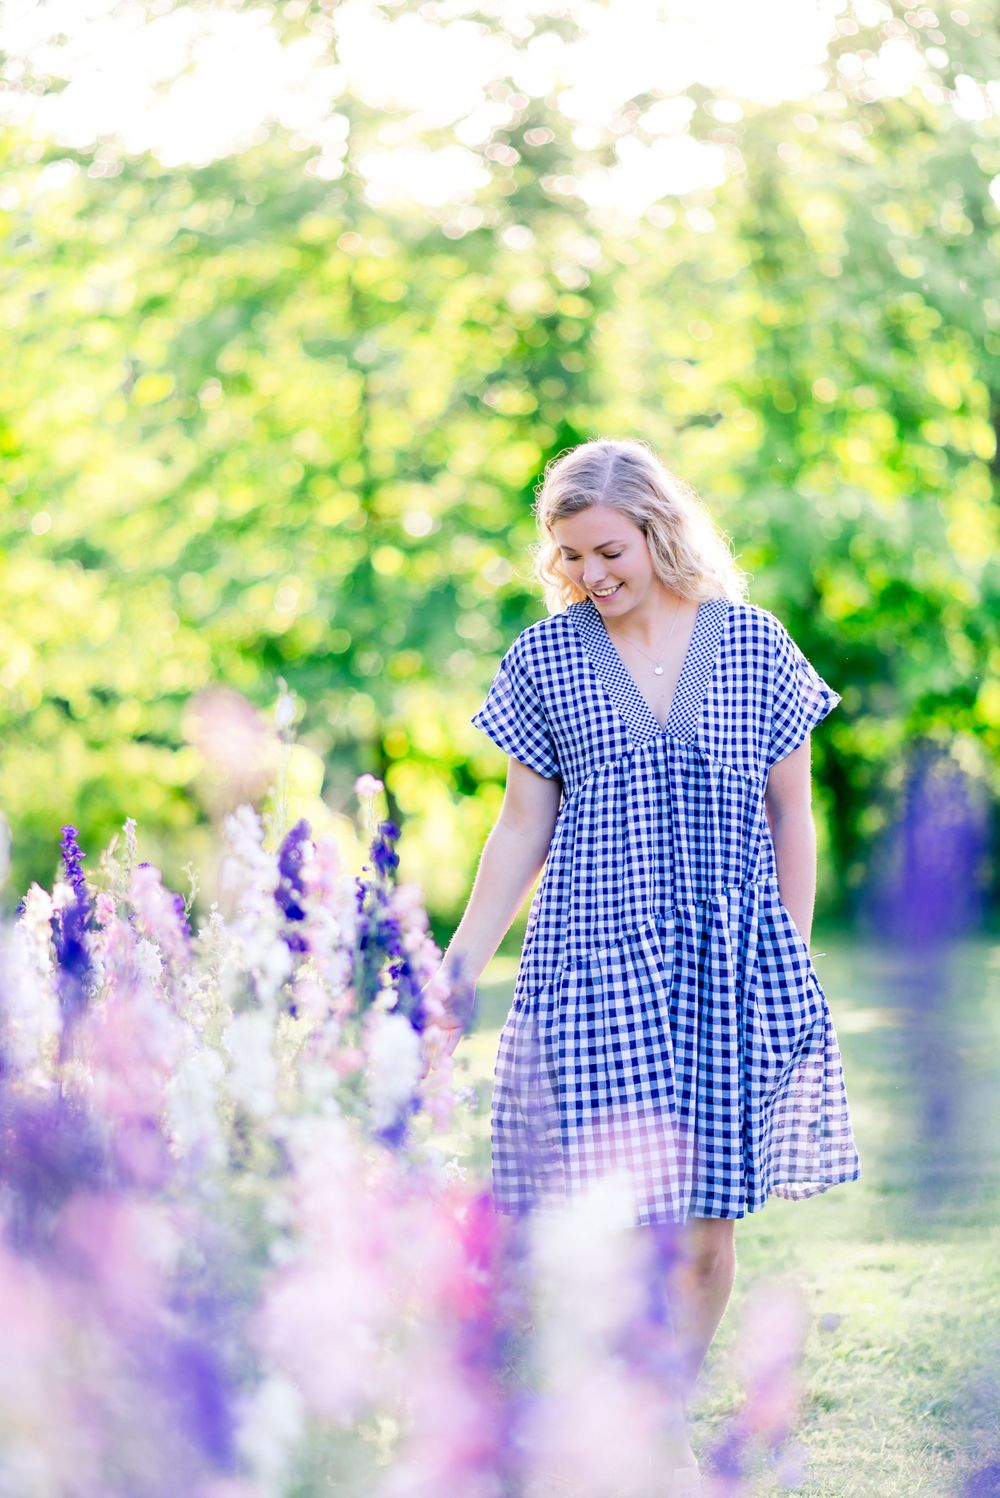 blonde girl in blue and white checkered dress walking through a field of purple, pink, and white flowers in summertime